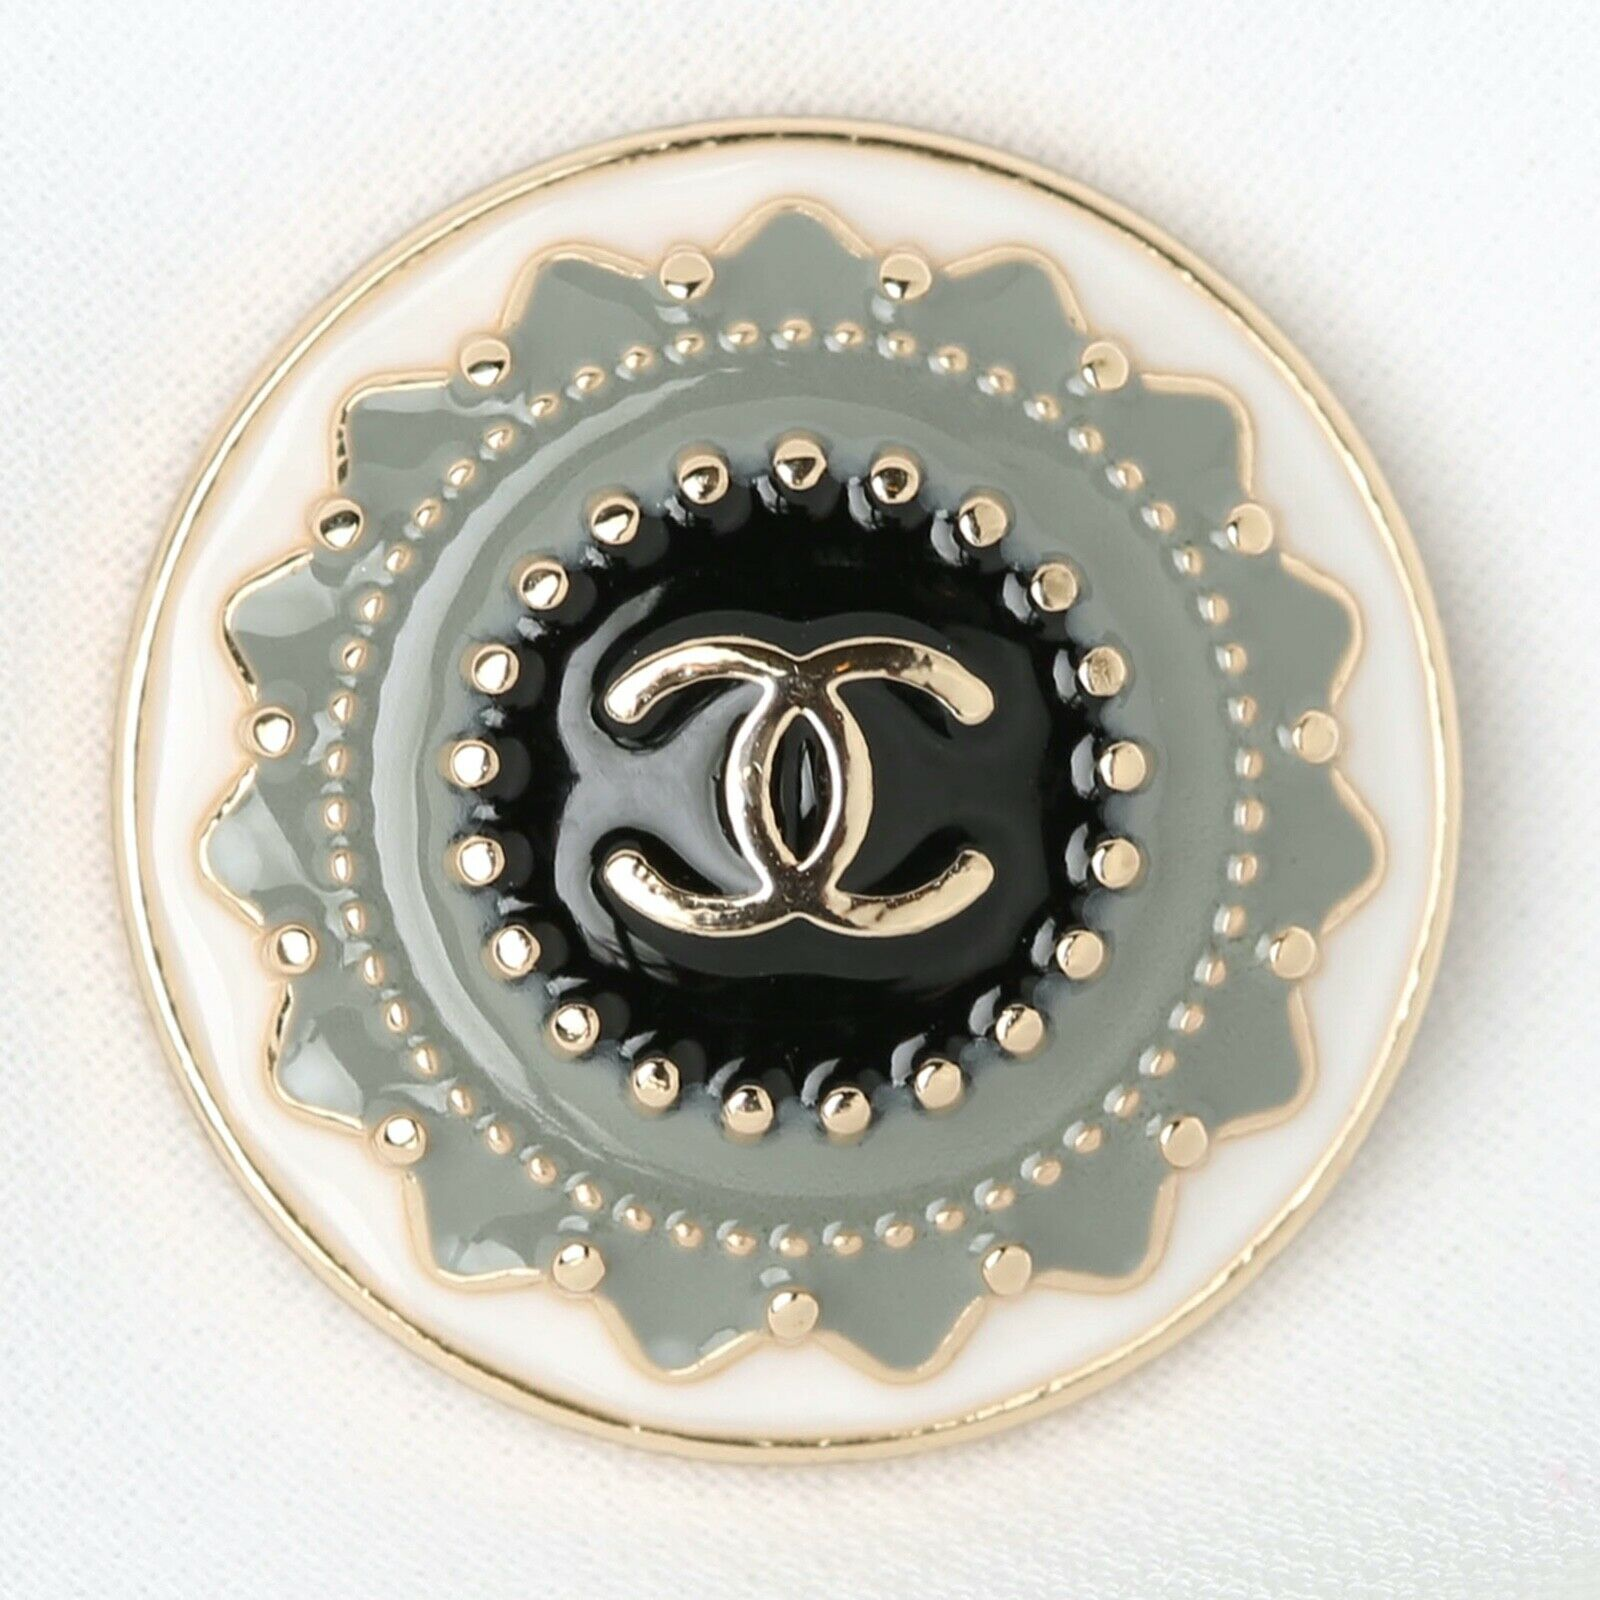 Chanel Button CC Grey Green 21 Mm Vintage Style Unstamped 1 Button - $9.99